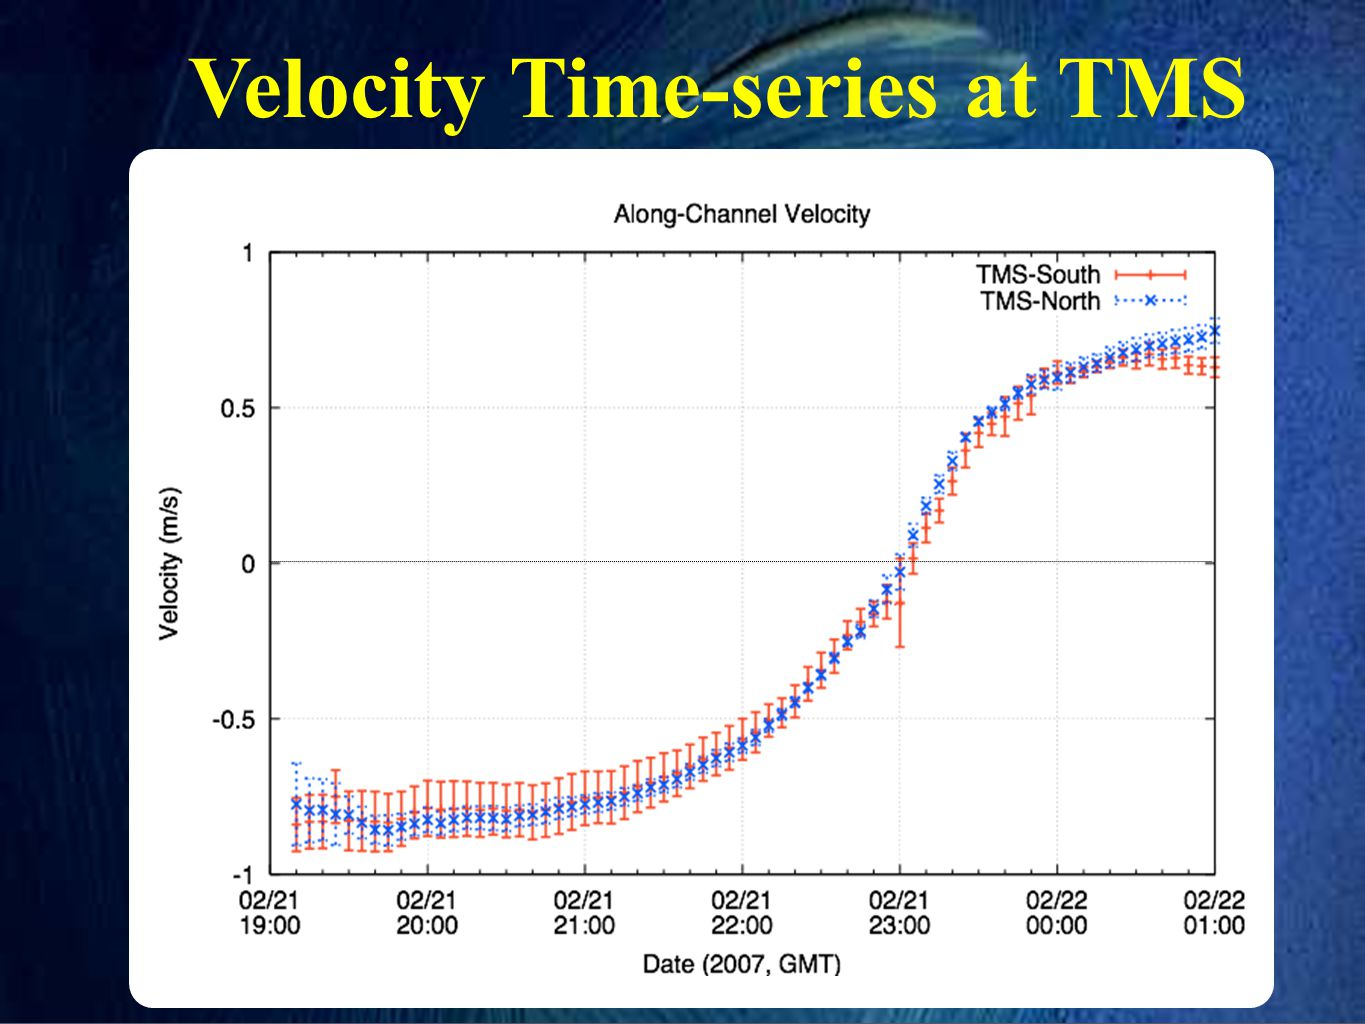 Velocity Time-series at TMS